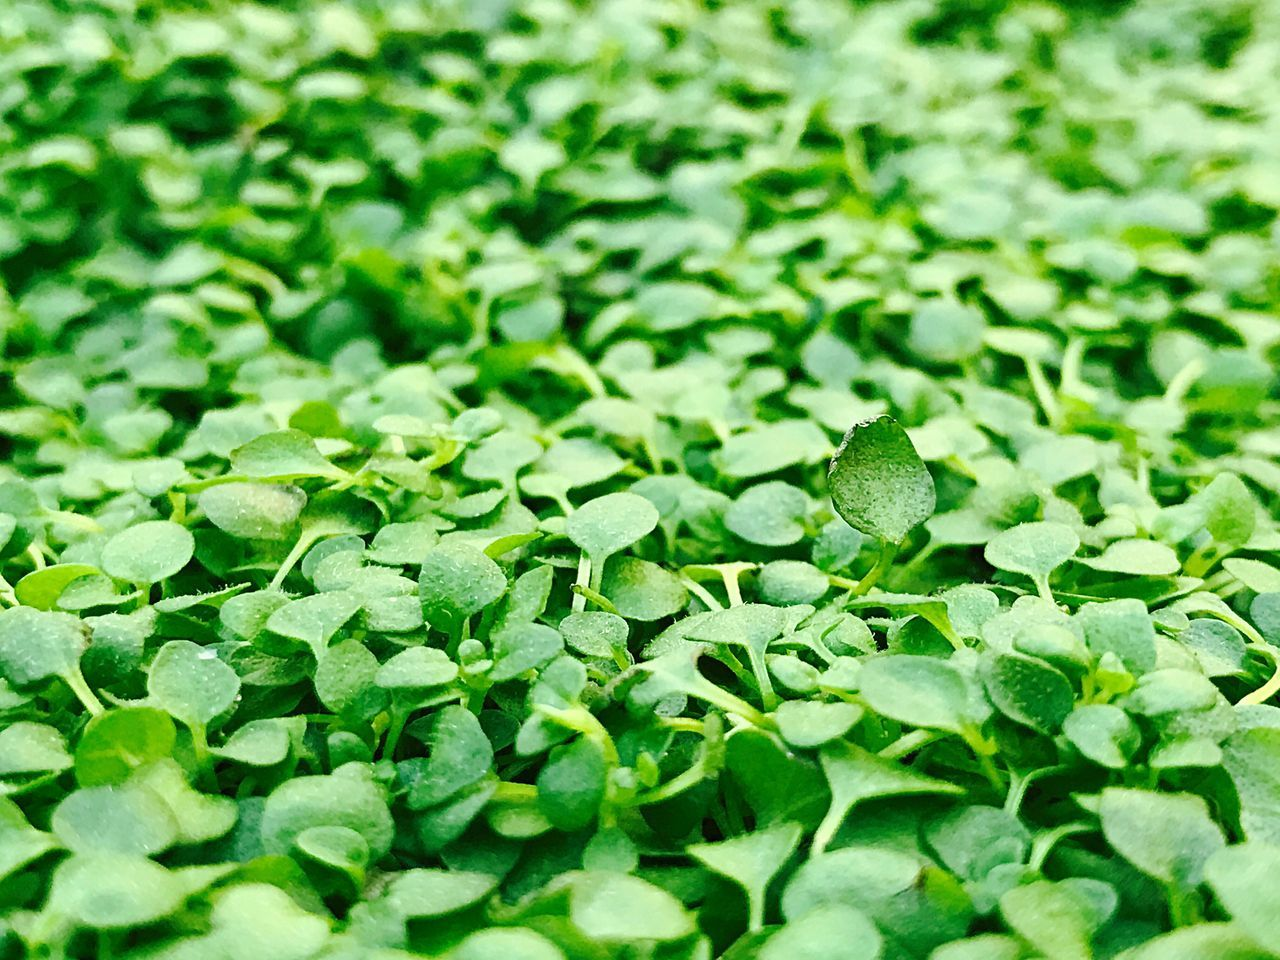 green color, leaf, selective focus, close-up, freshness, nature, no people, backgrounds, full frame, plant, growth, food, beauty in nature, day, fragility, outdoors